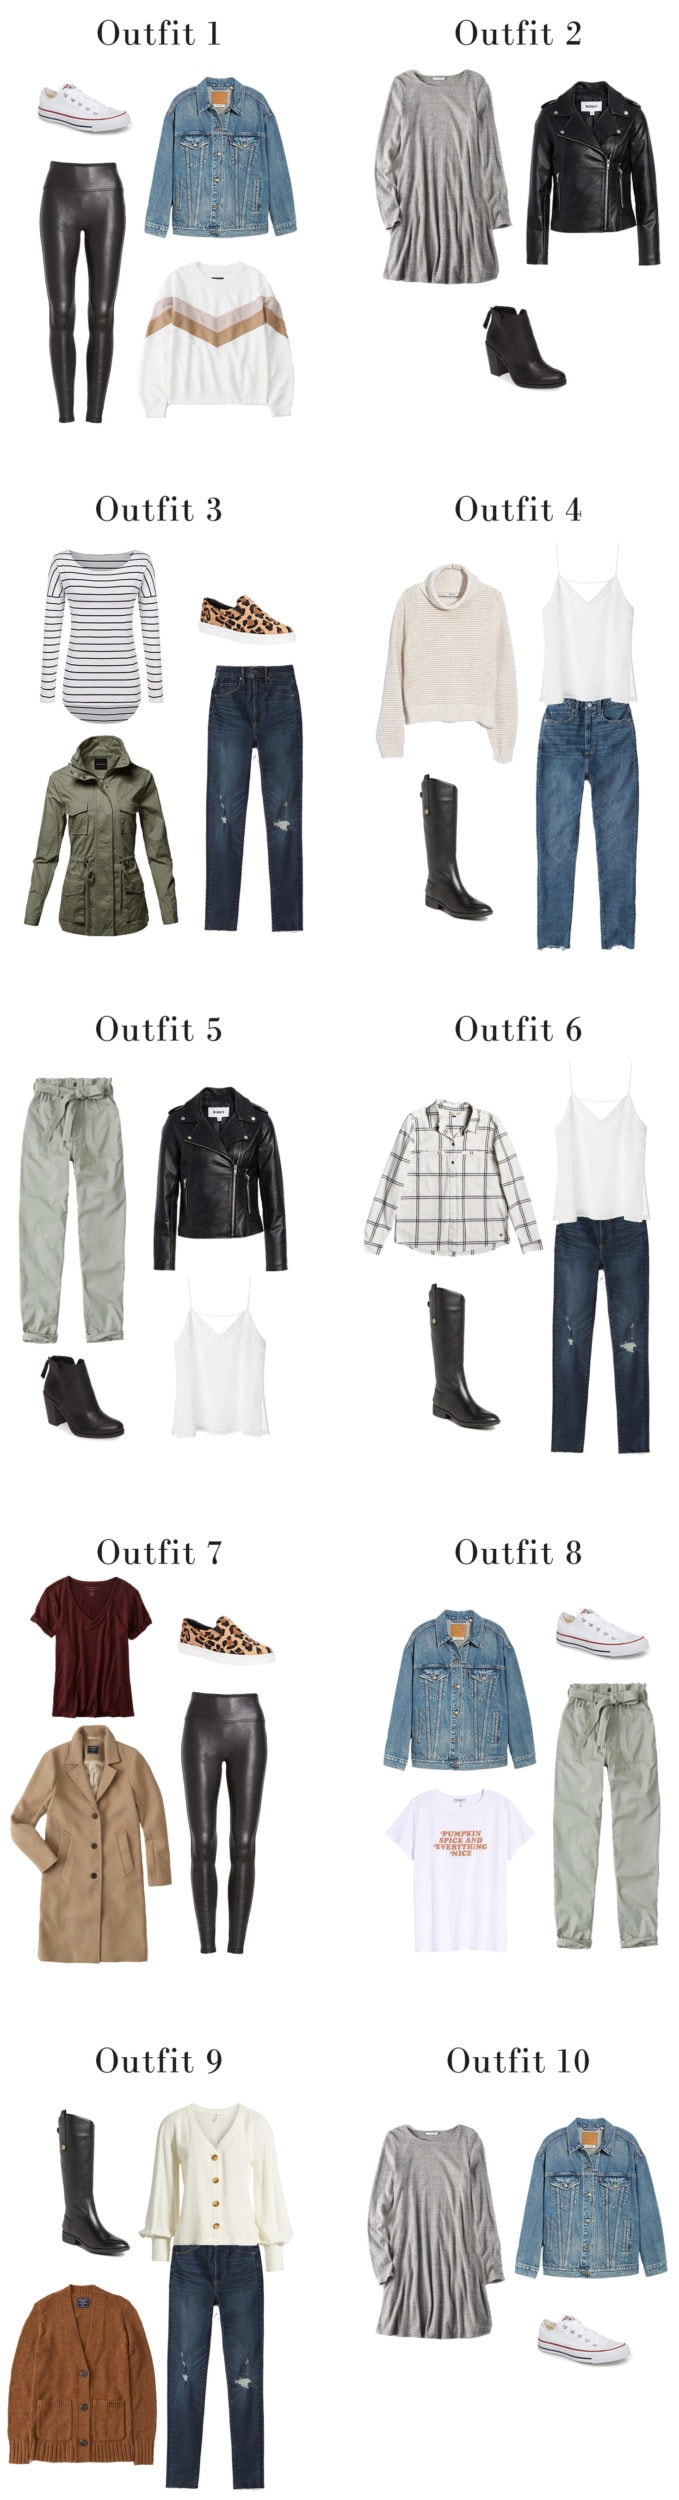 Fall capsule wardrobe outfits